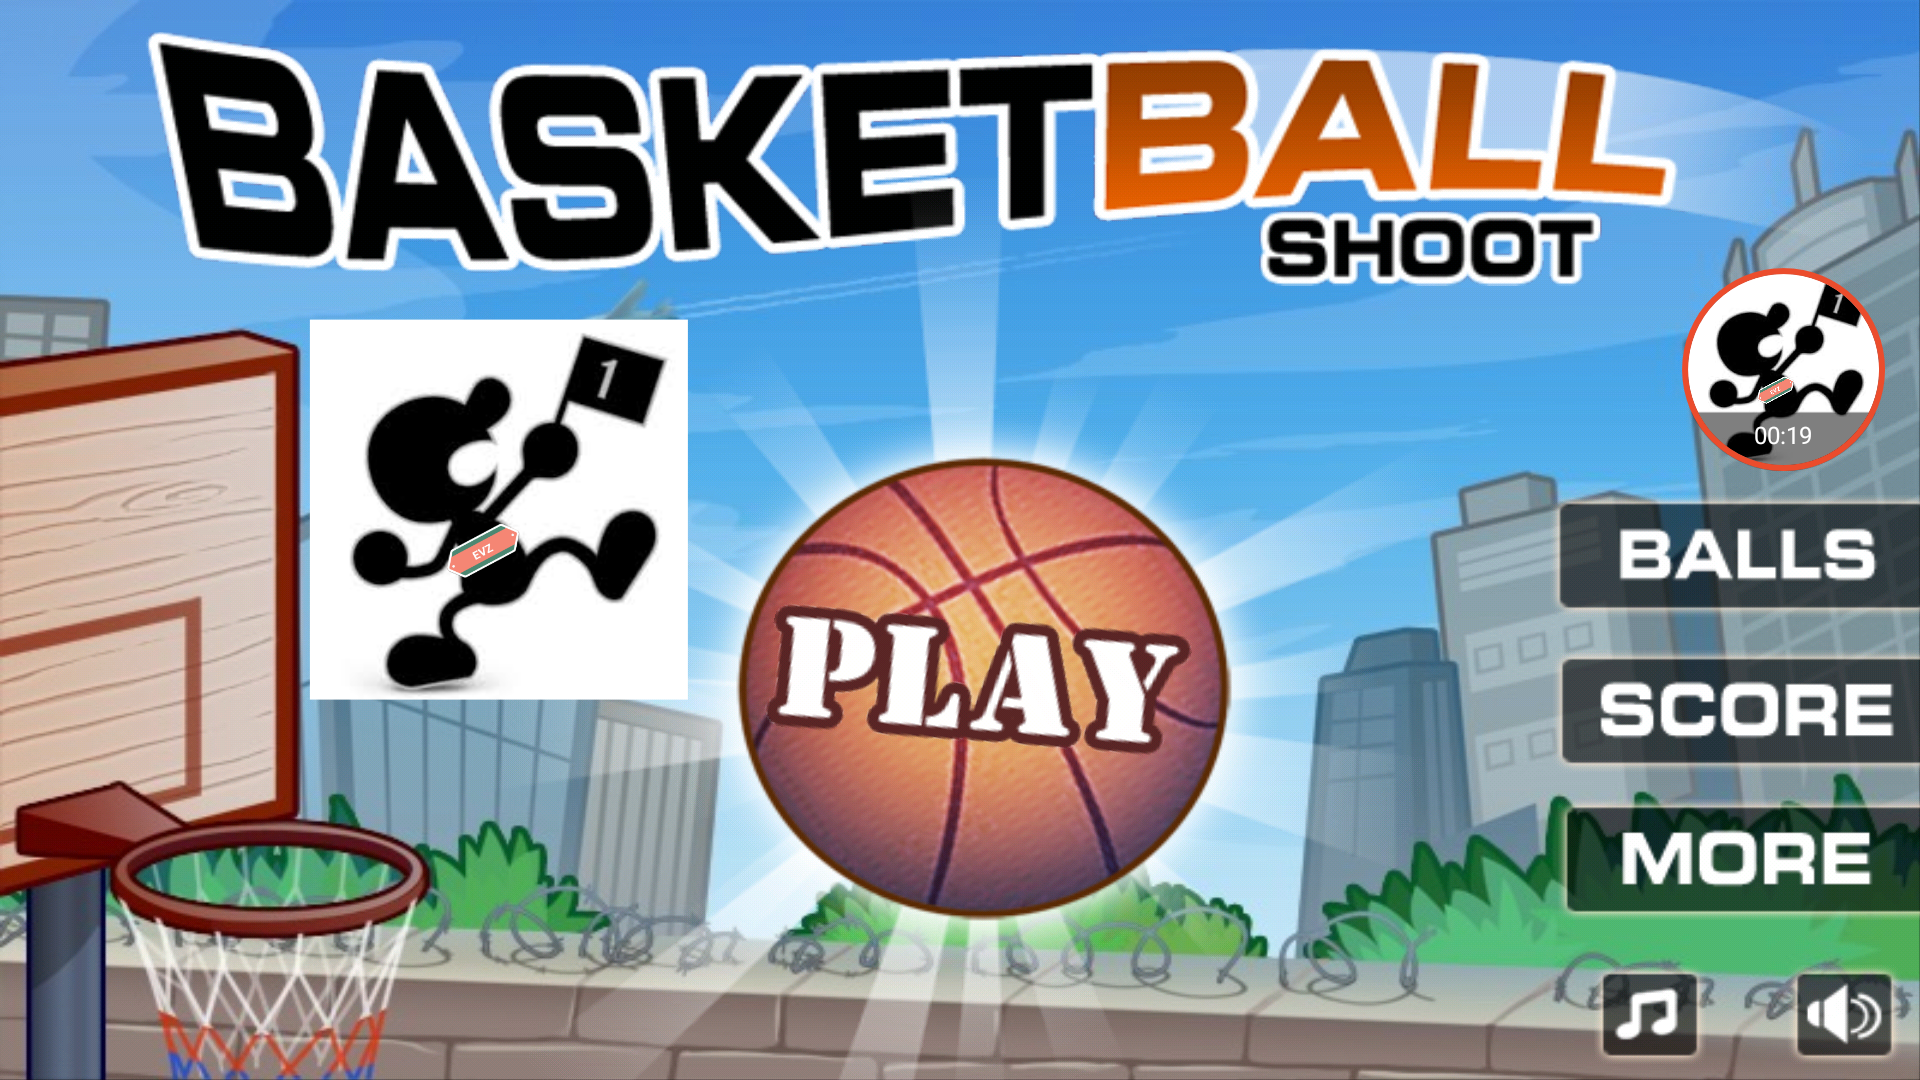 Basketball Shoot [Sunfoer Mobile] 11,676 points